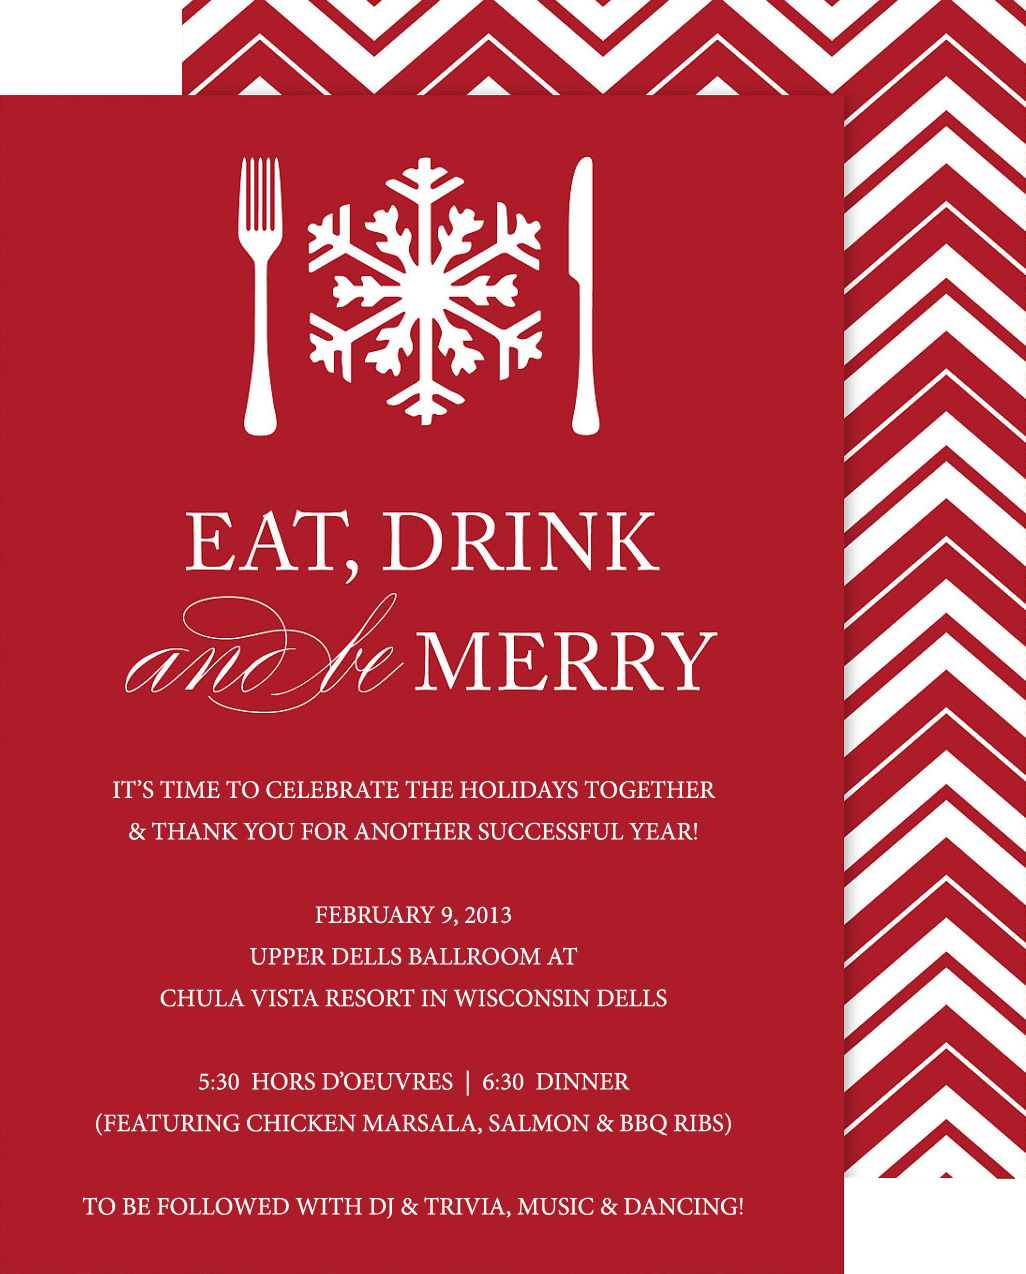 christmas party invitationsCompany Holiday Party Invitations Holiday invitation XFSwhgqC